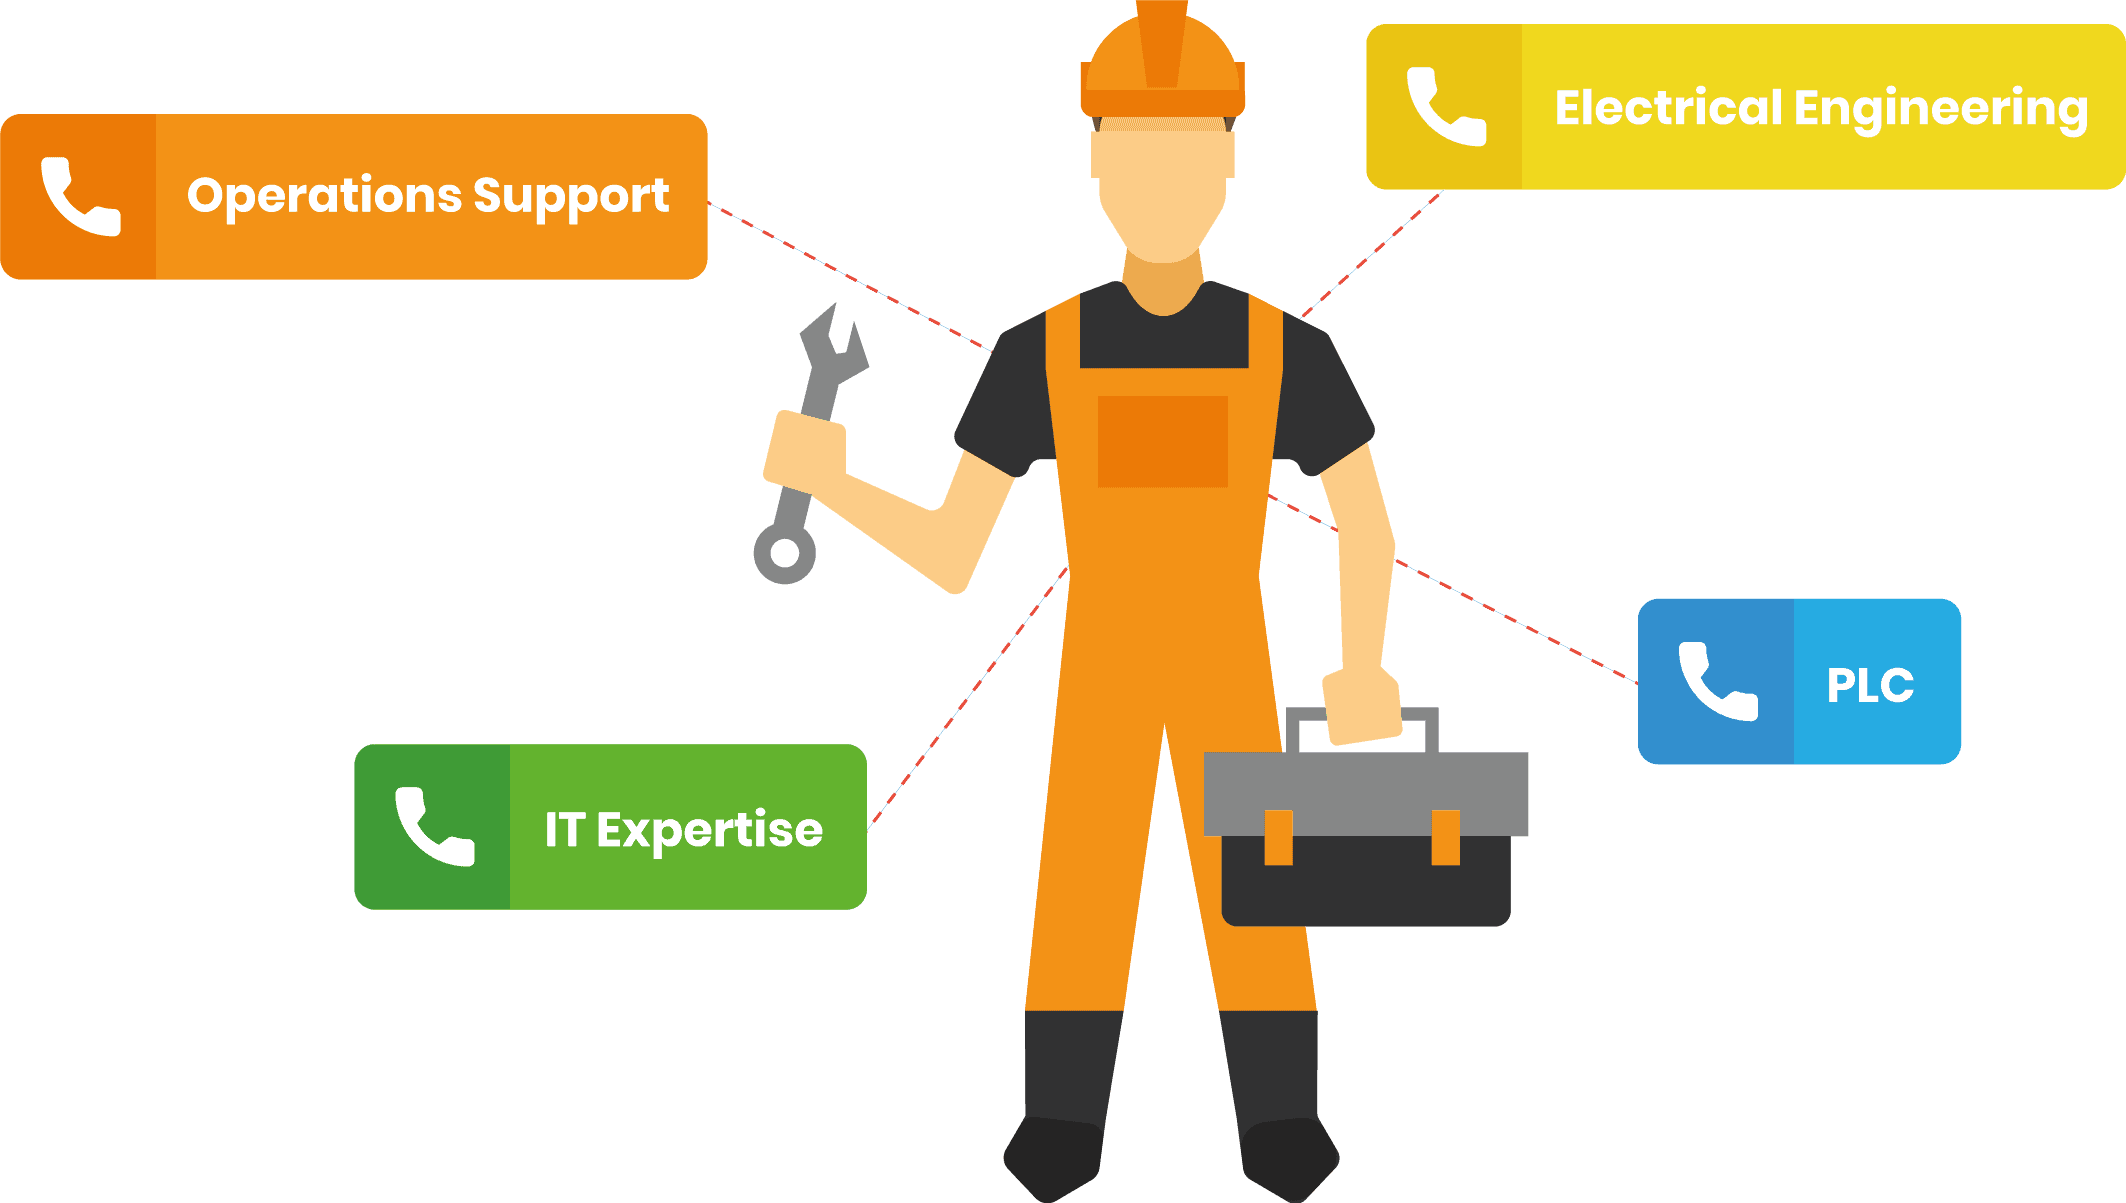 Tag technicians with expertises for call routing